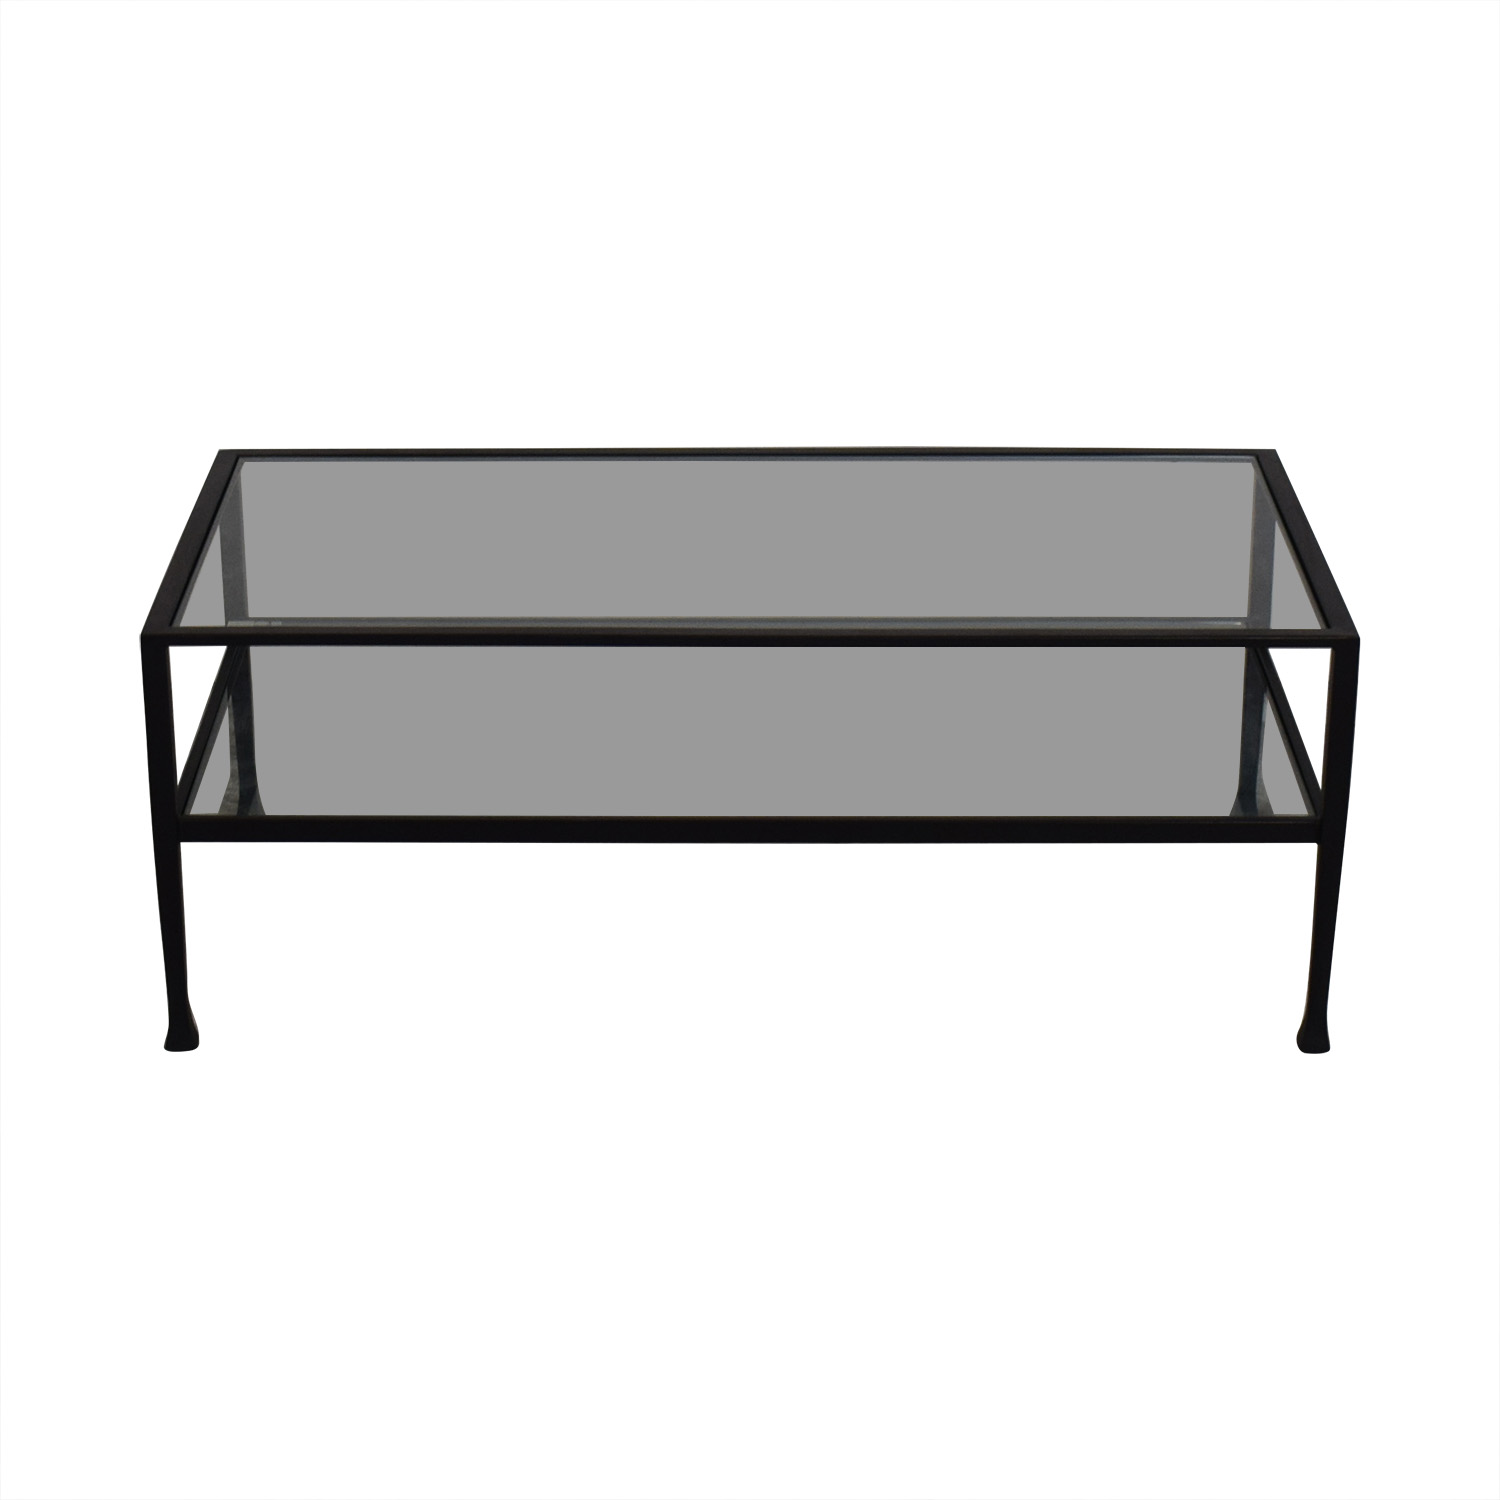 Pottery Barn Pottery Barn Glass and Black Coffee Table discount